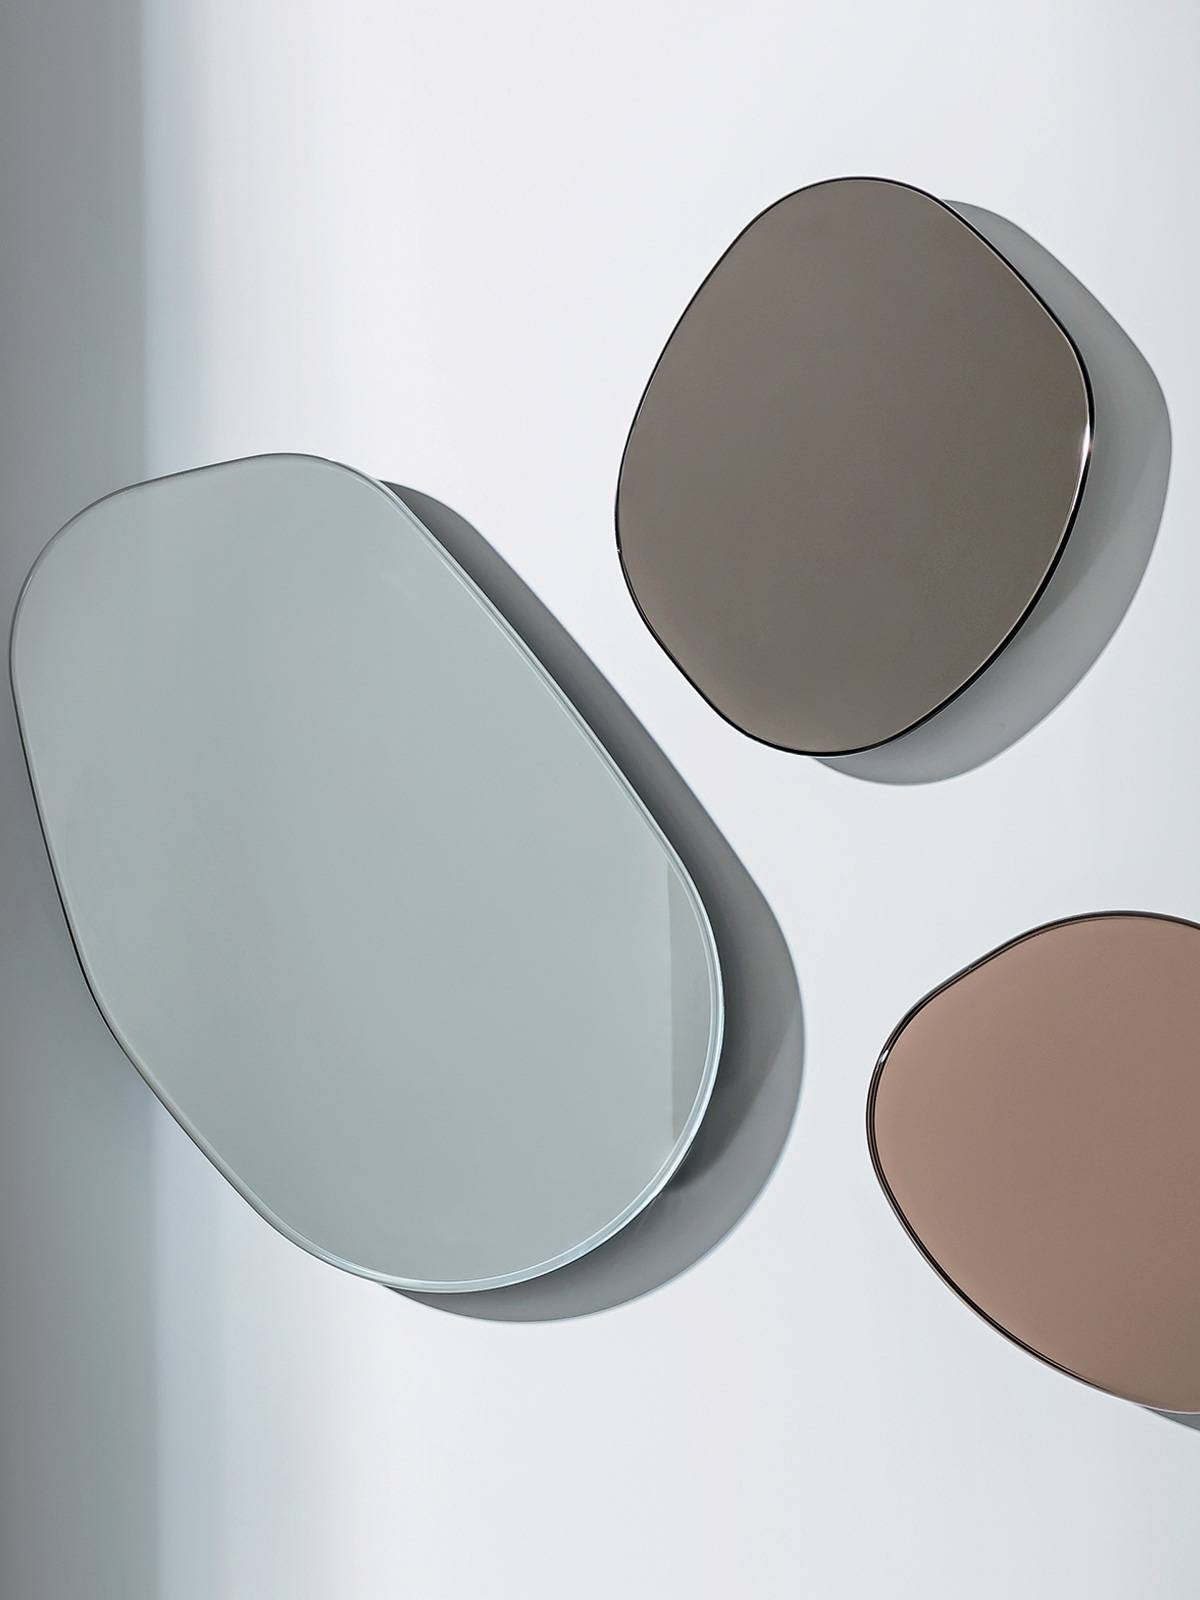 Gorgeous Small Round Decorative Wall Mirrors Small Mirror Trendy inside Decorative Small Mirrors (Image 9 of 25)